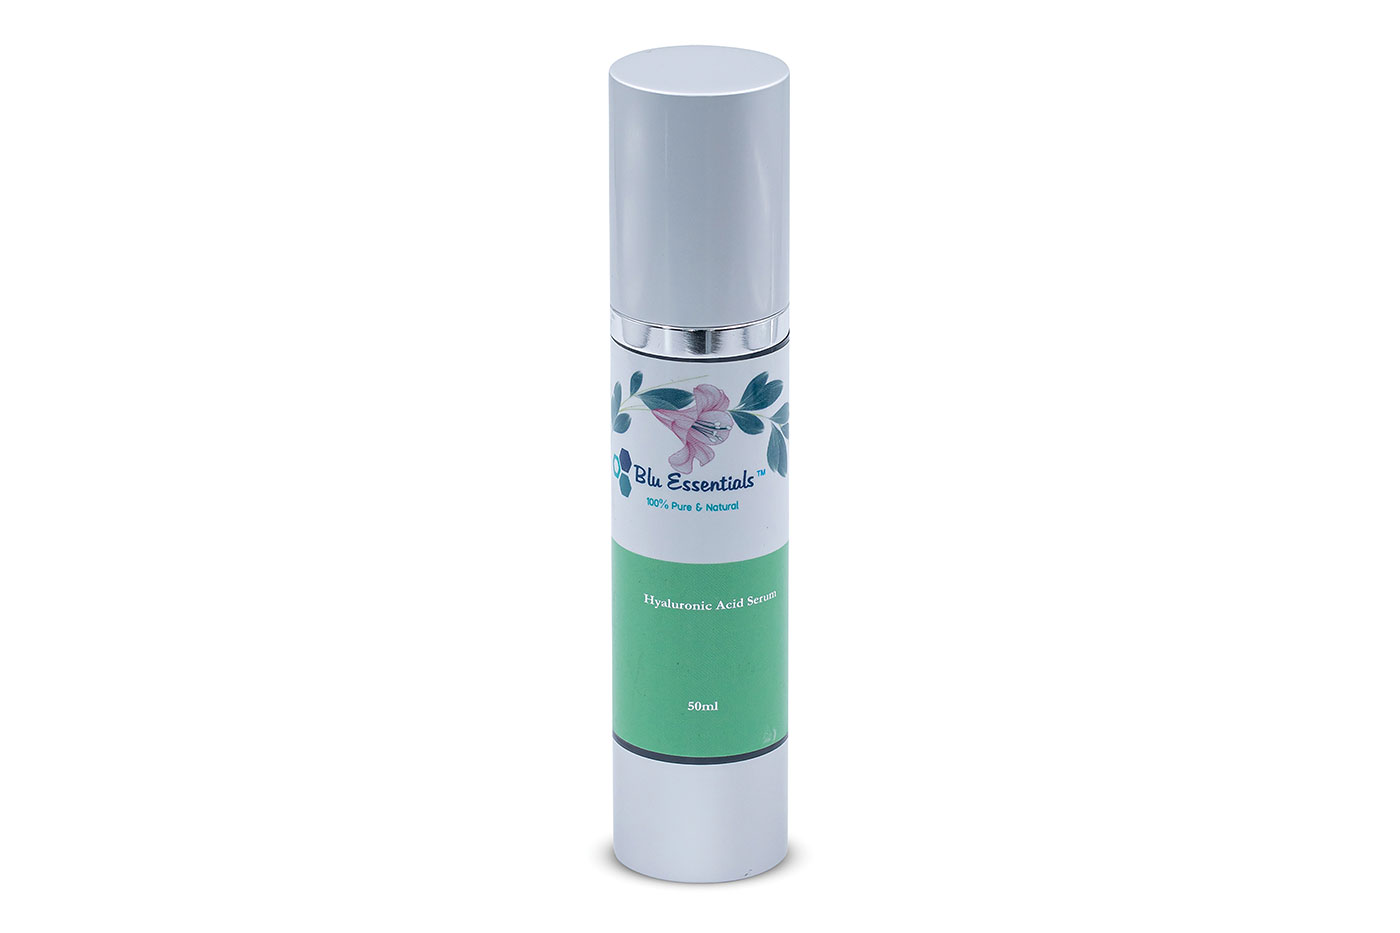 Blu Essentials serum for replenished and glowing skin